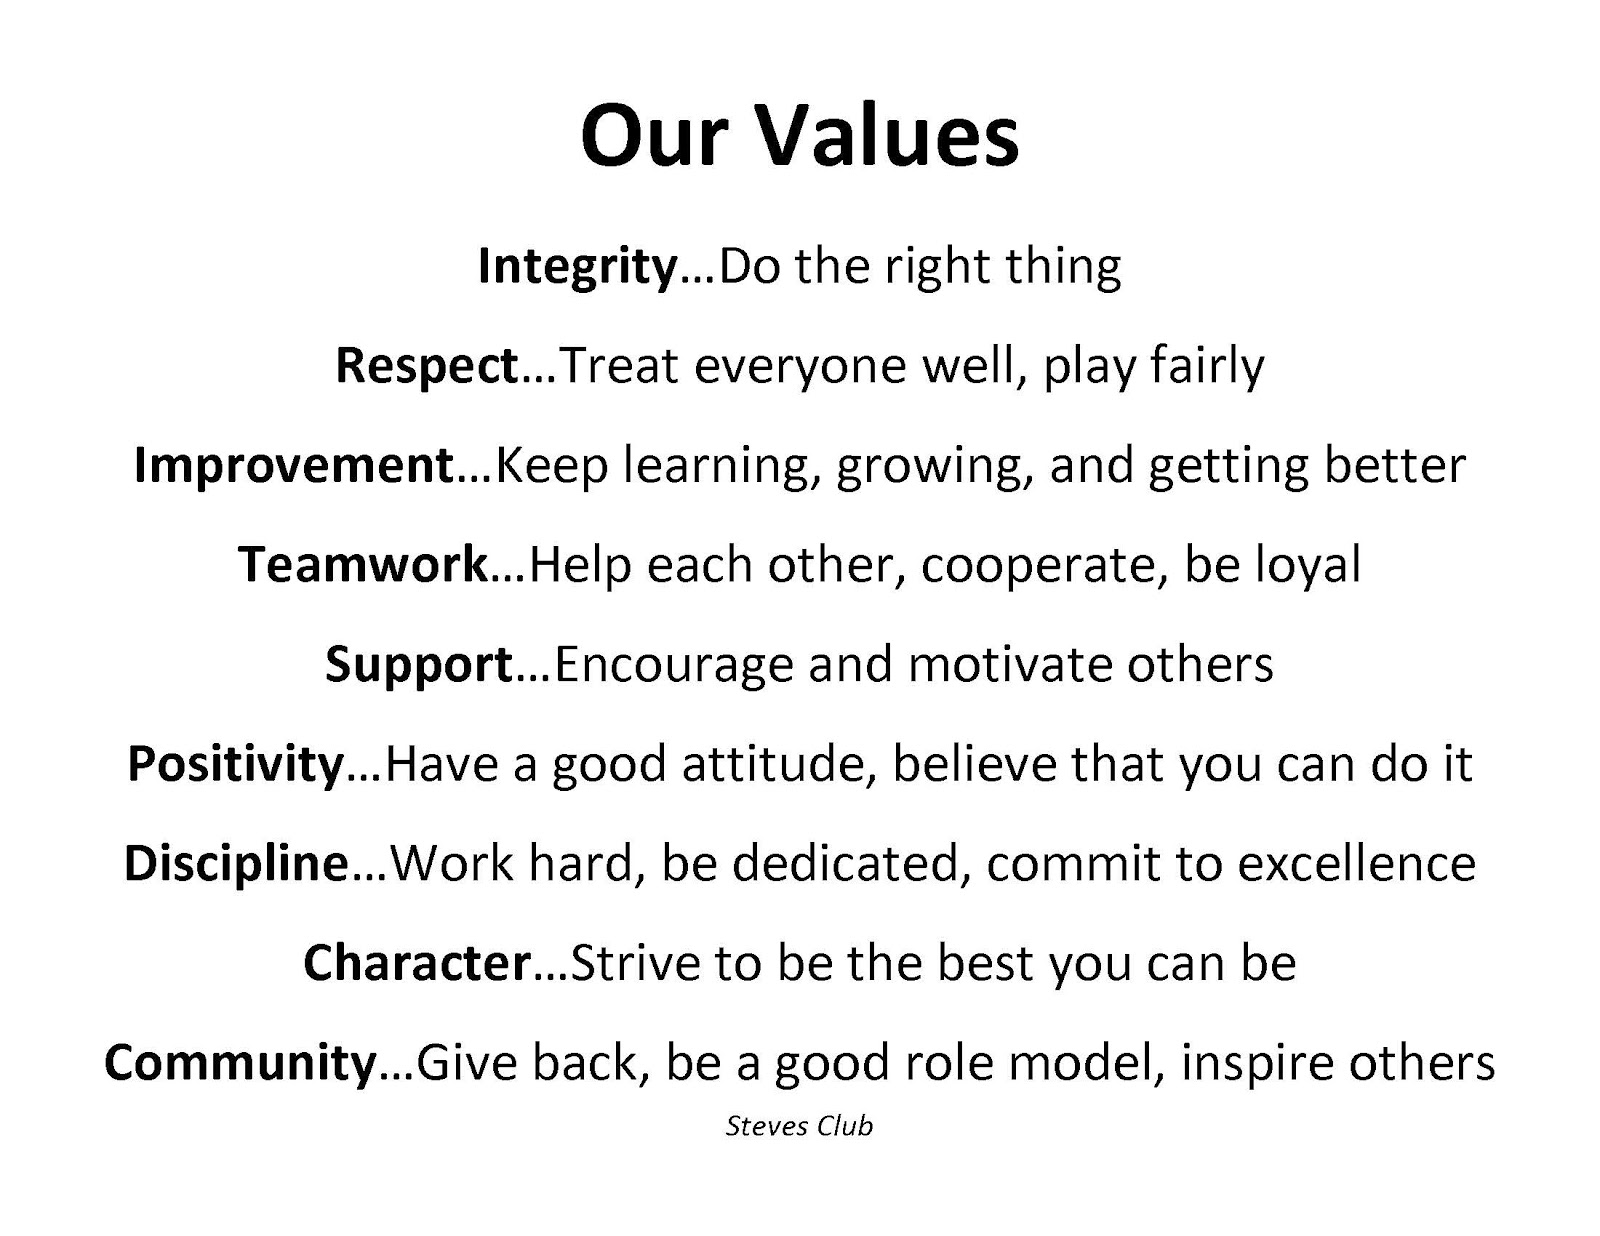 Wagner's Big Red Phys Ed: OUR VALUES